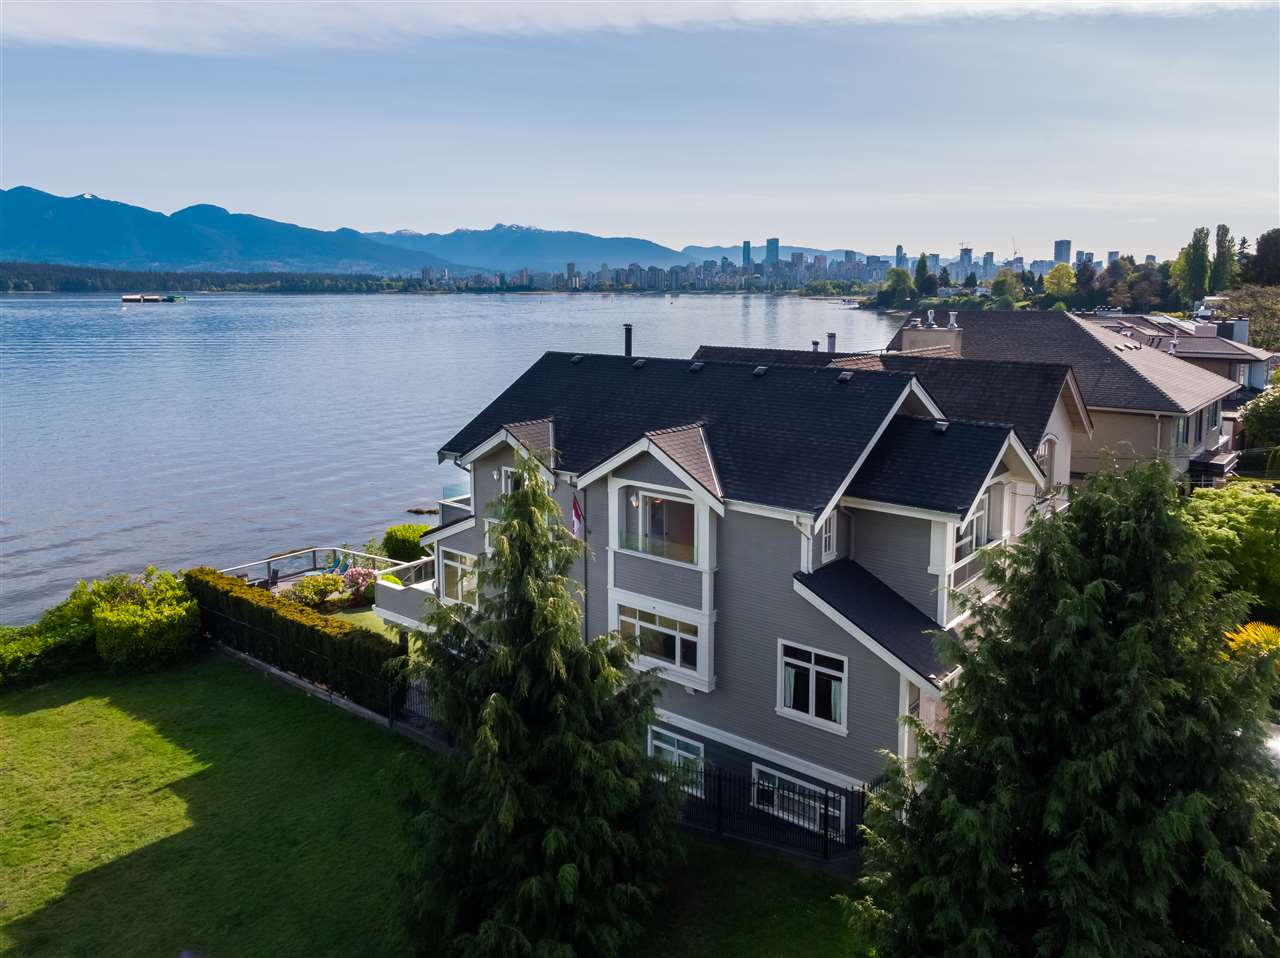 3197 POINT GREY ROAD, 1152